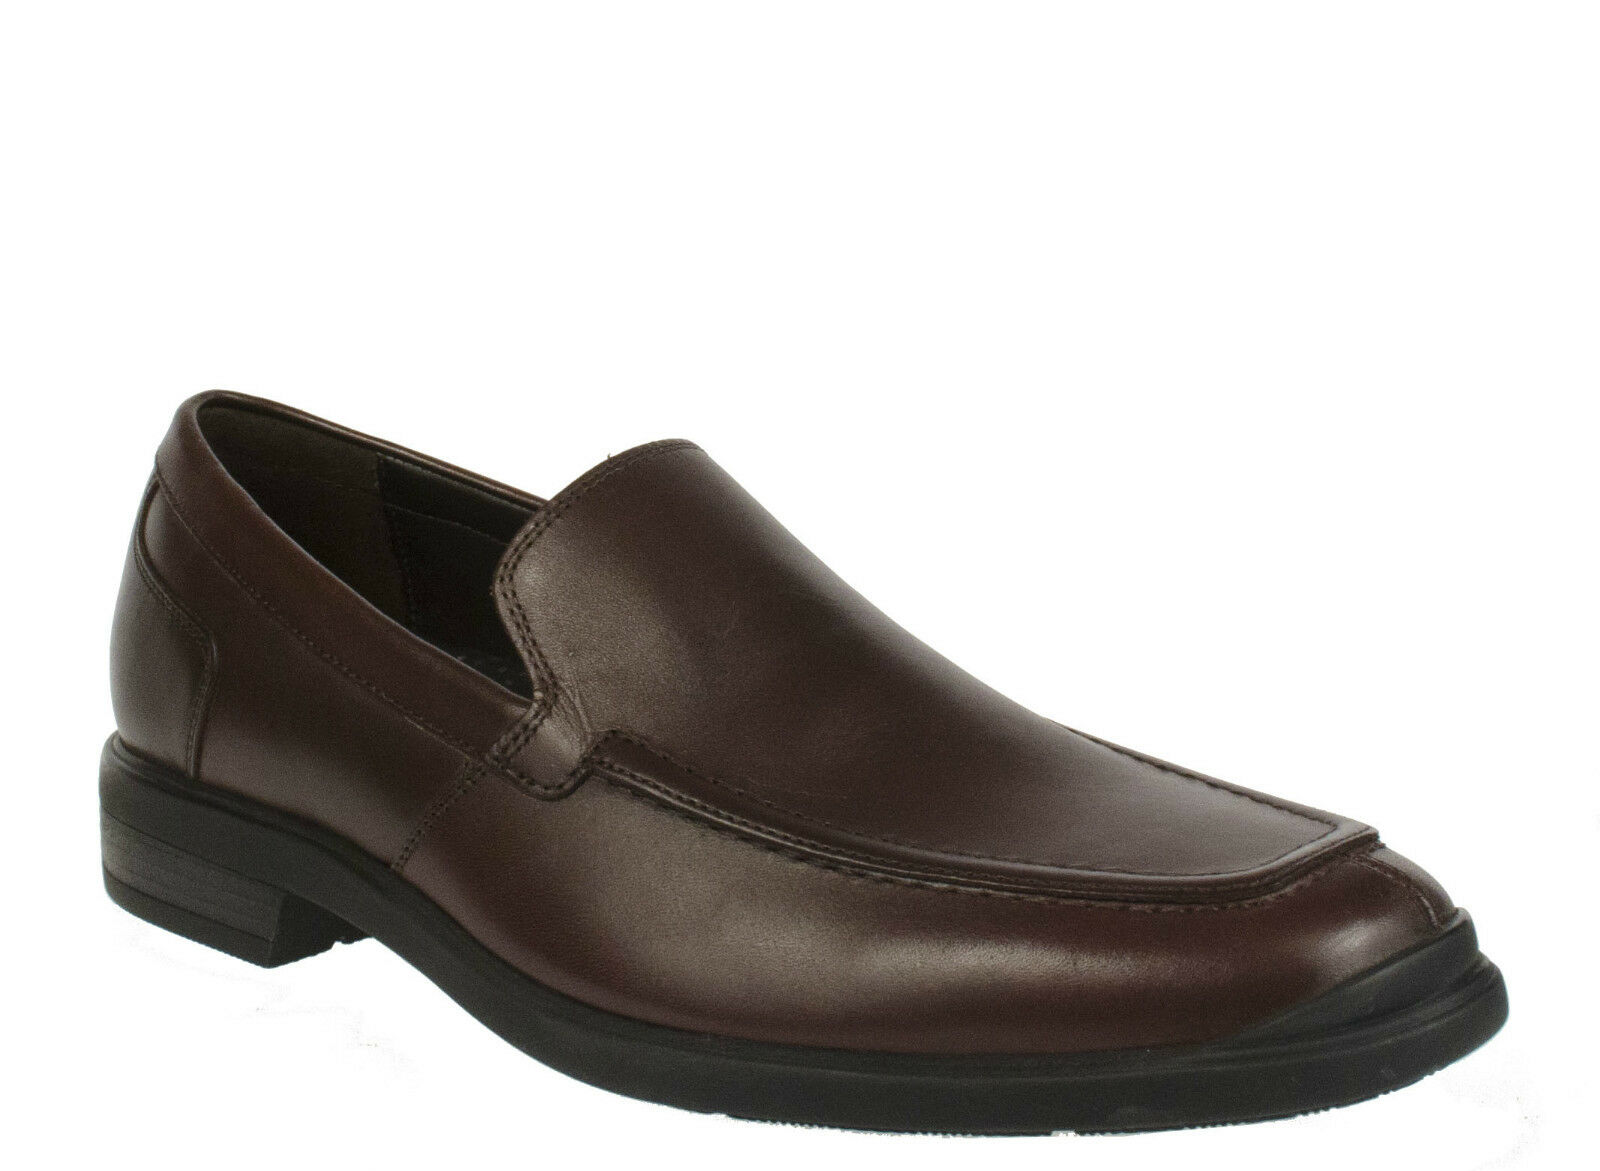 COLE HAAN AIR STYLAR SPLIT VENETIAN T MGold LOAFER LOAFER LOAFER SLIP ON schuhe MULTIGrößeS AS 6805c8